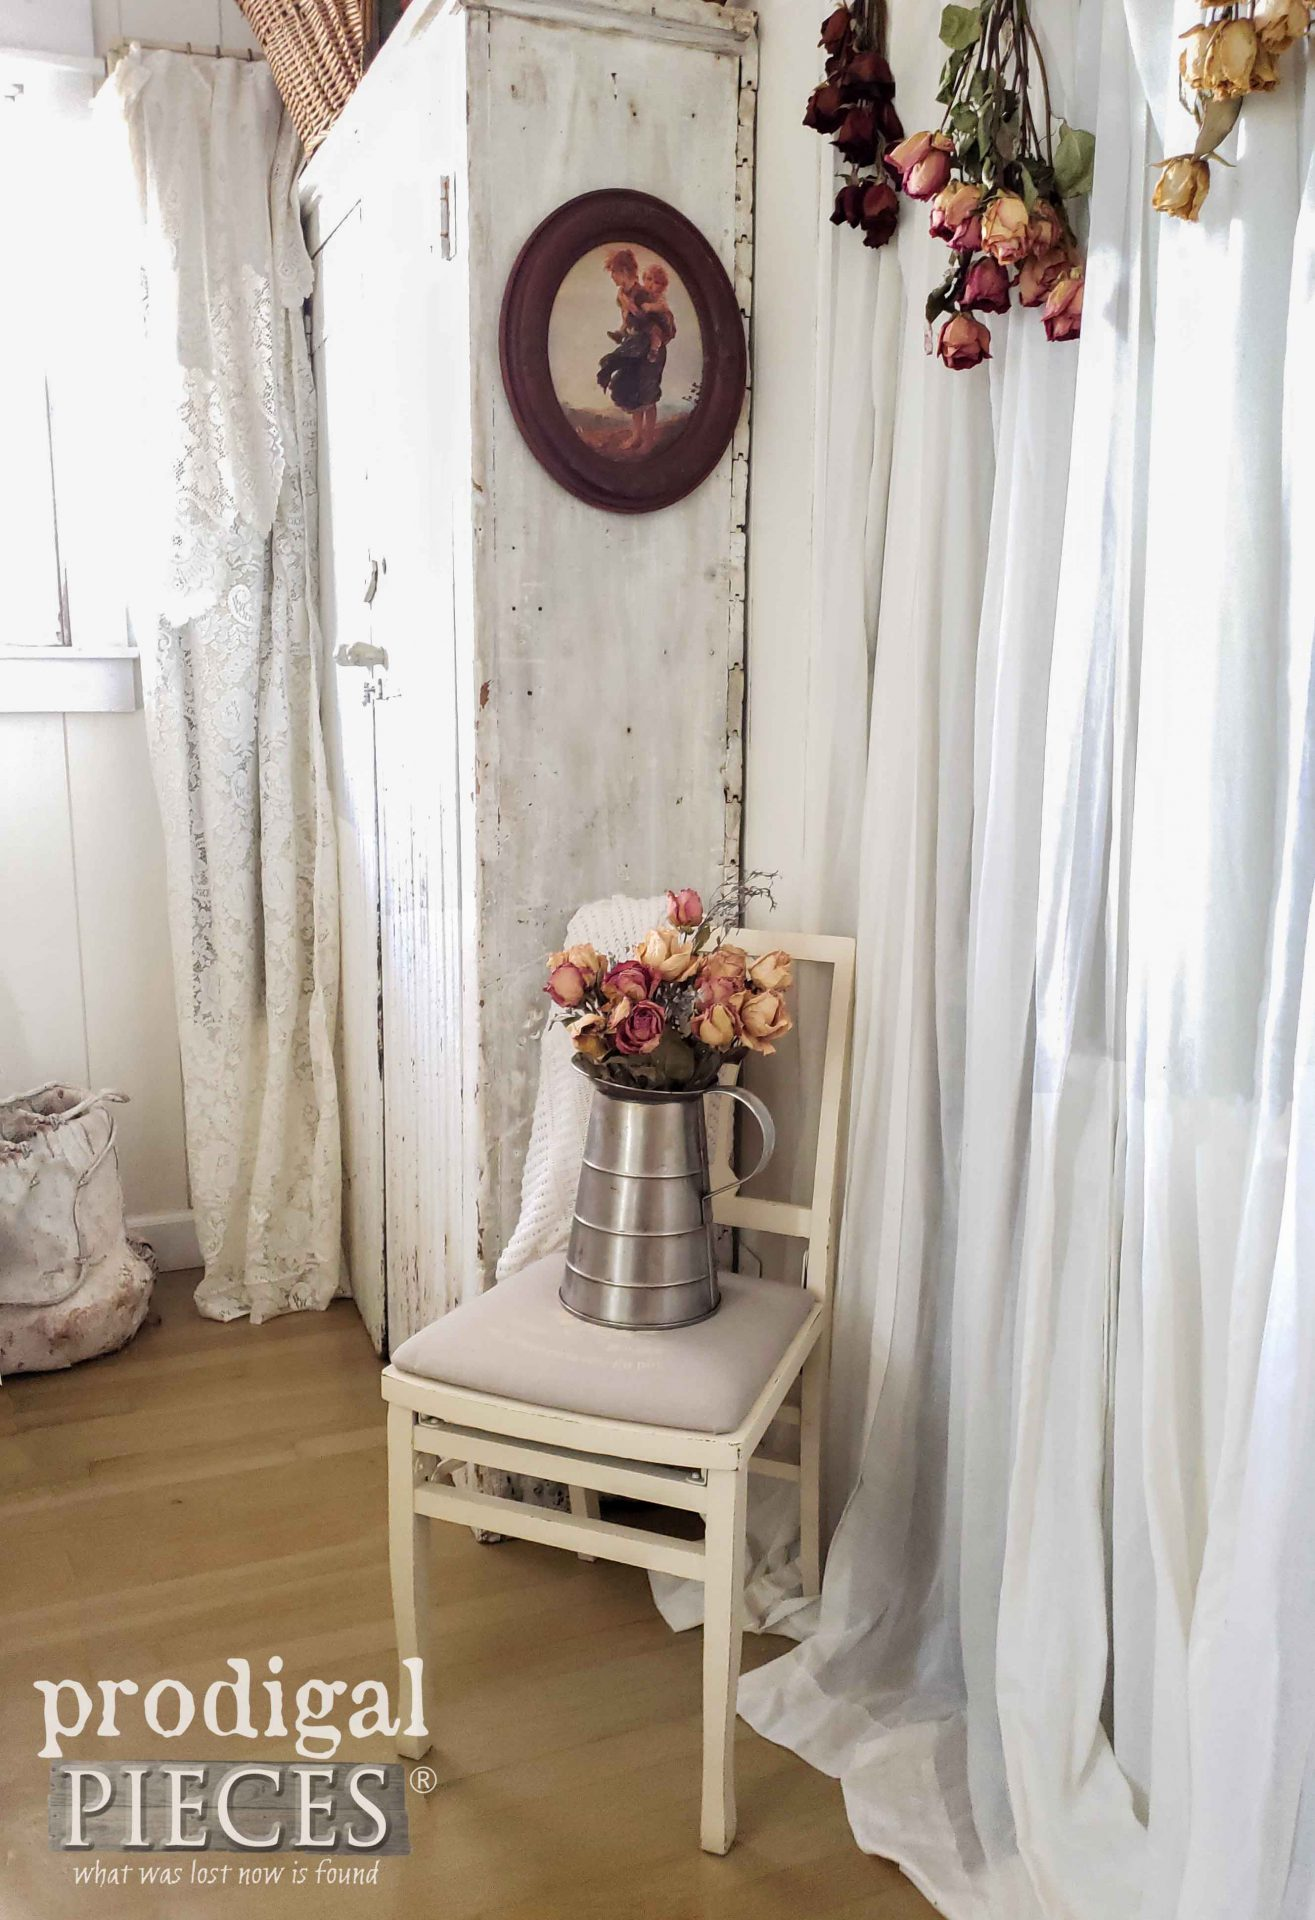 French Chic Folding Chair with Grain Sack Upholstery by Larissa of Prodigal Pieces | prodigalpieces.com #prodigalpieces #farmhouse #home #diy #homedecor